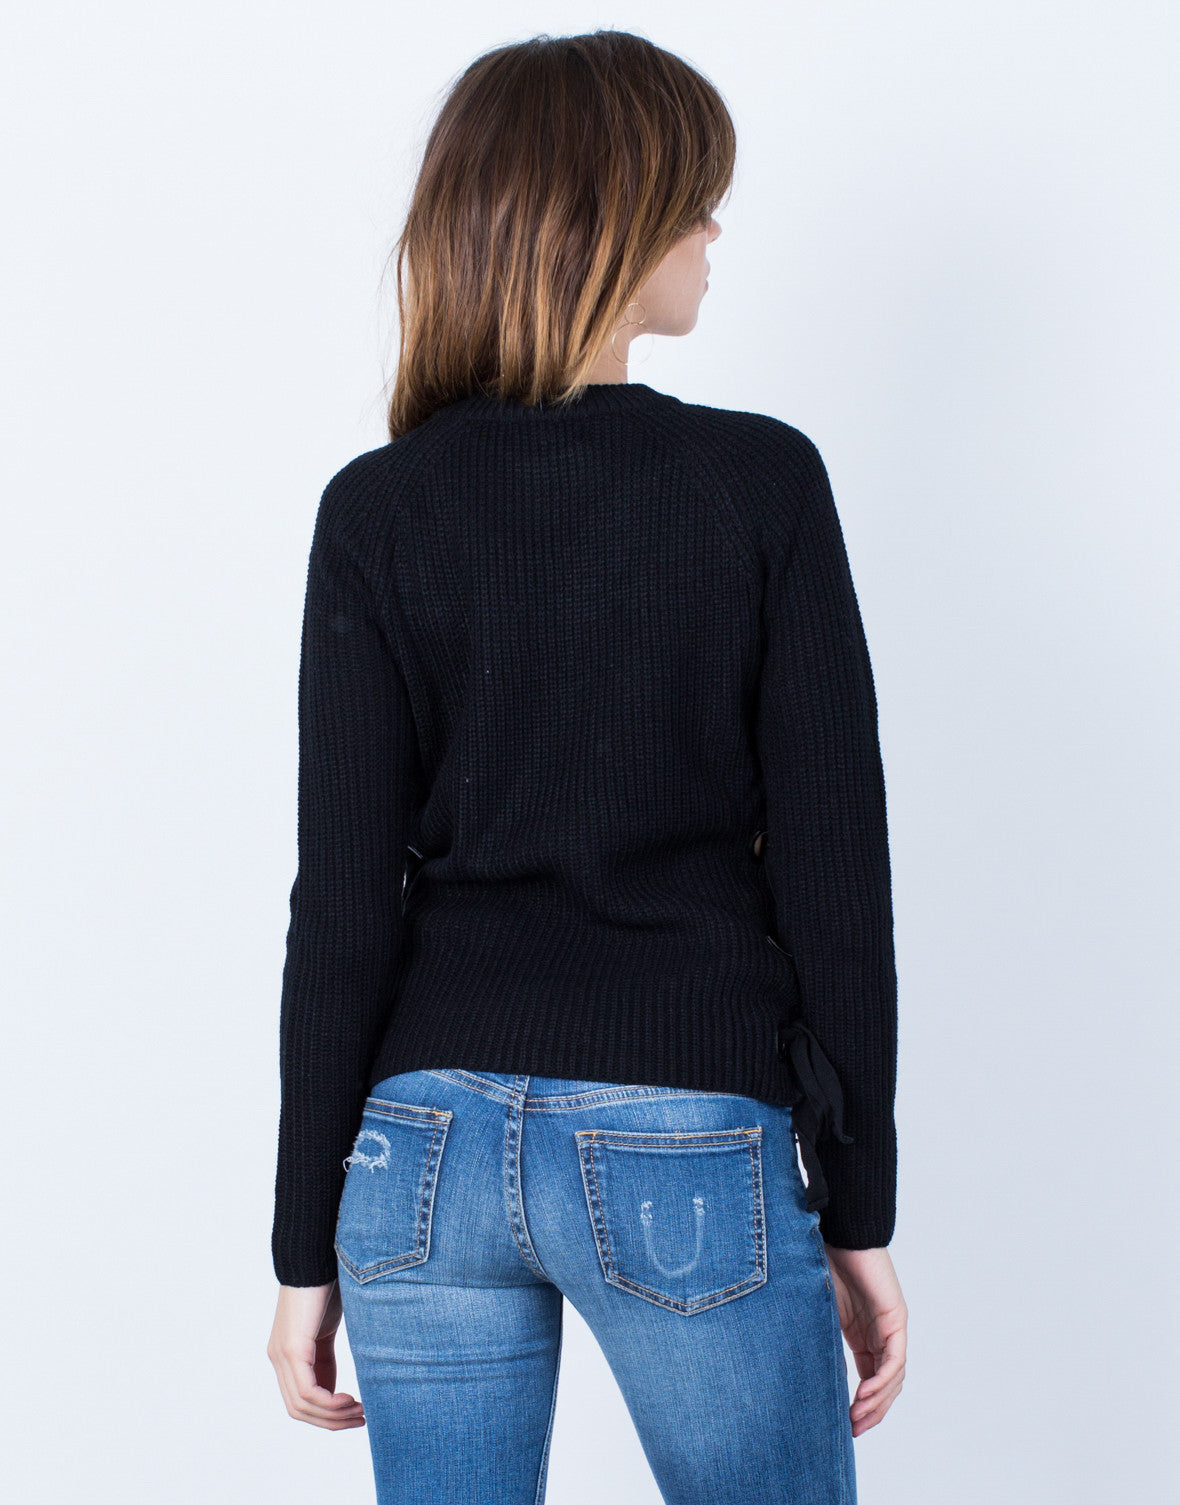 Back View of Officially Mine Sweater Top